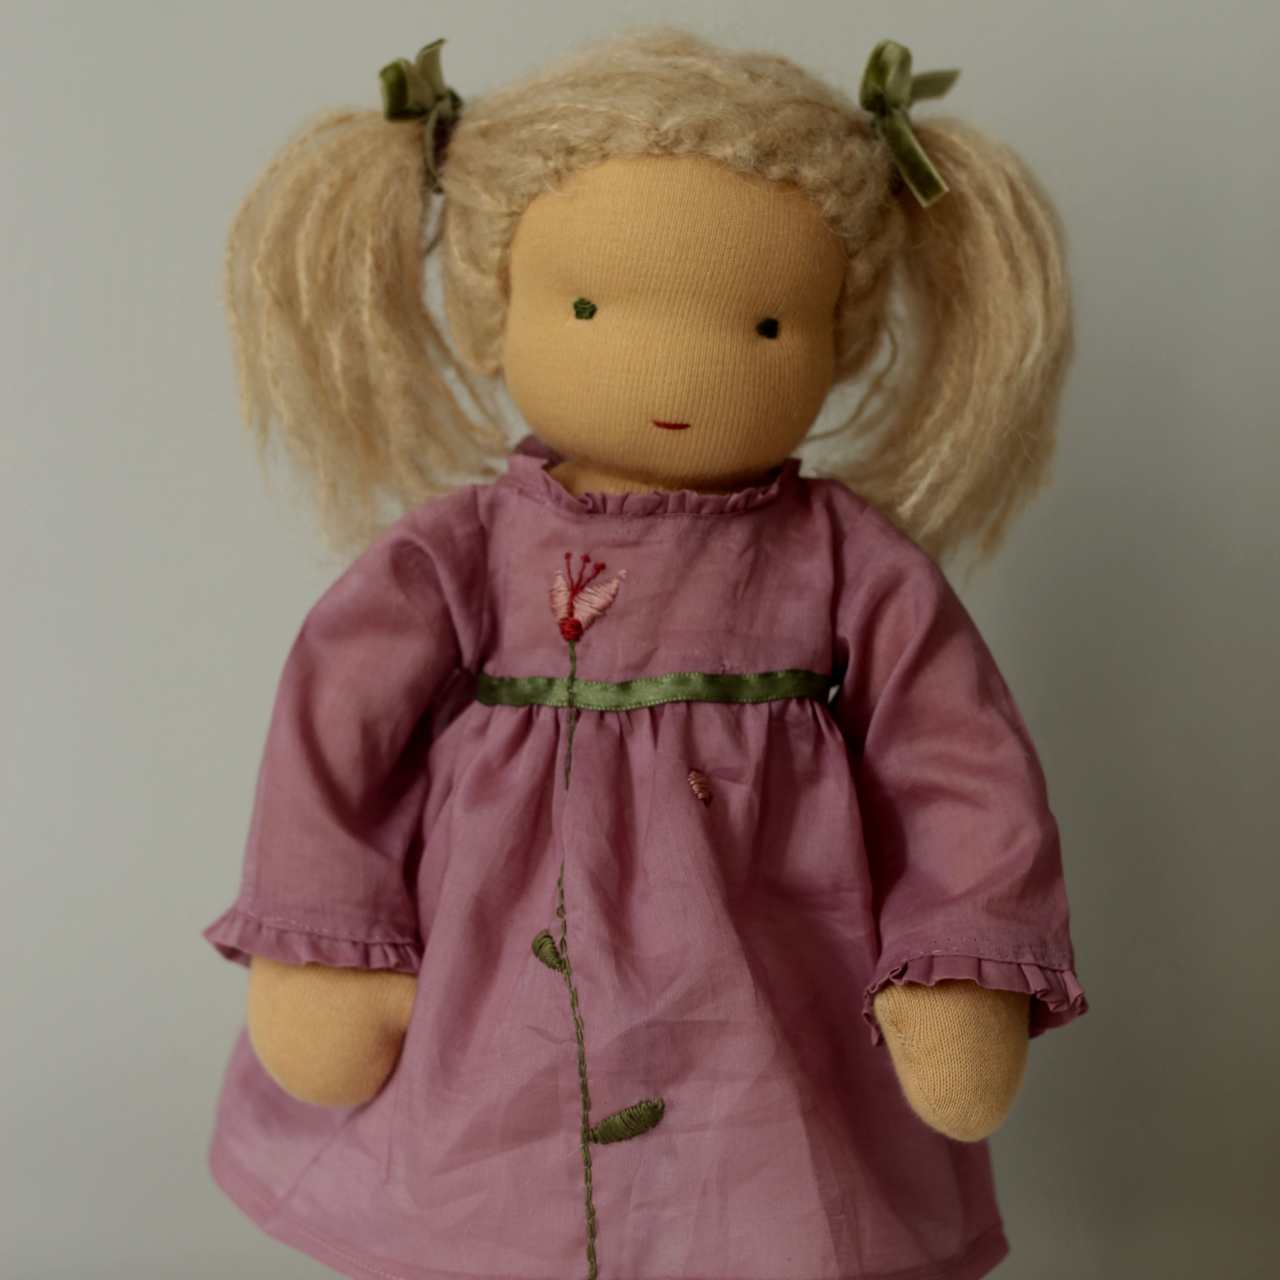 Waldorf doll girl in pink dresss, blond hair, made by feinslieb